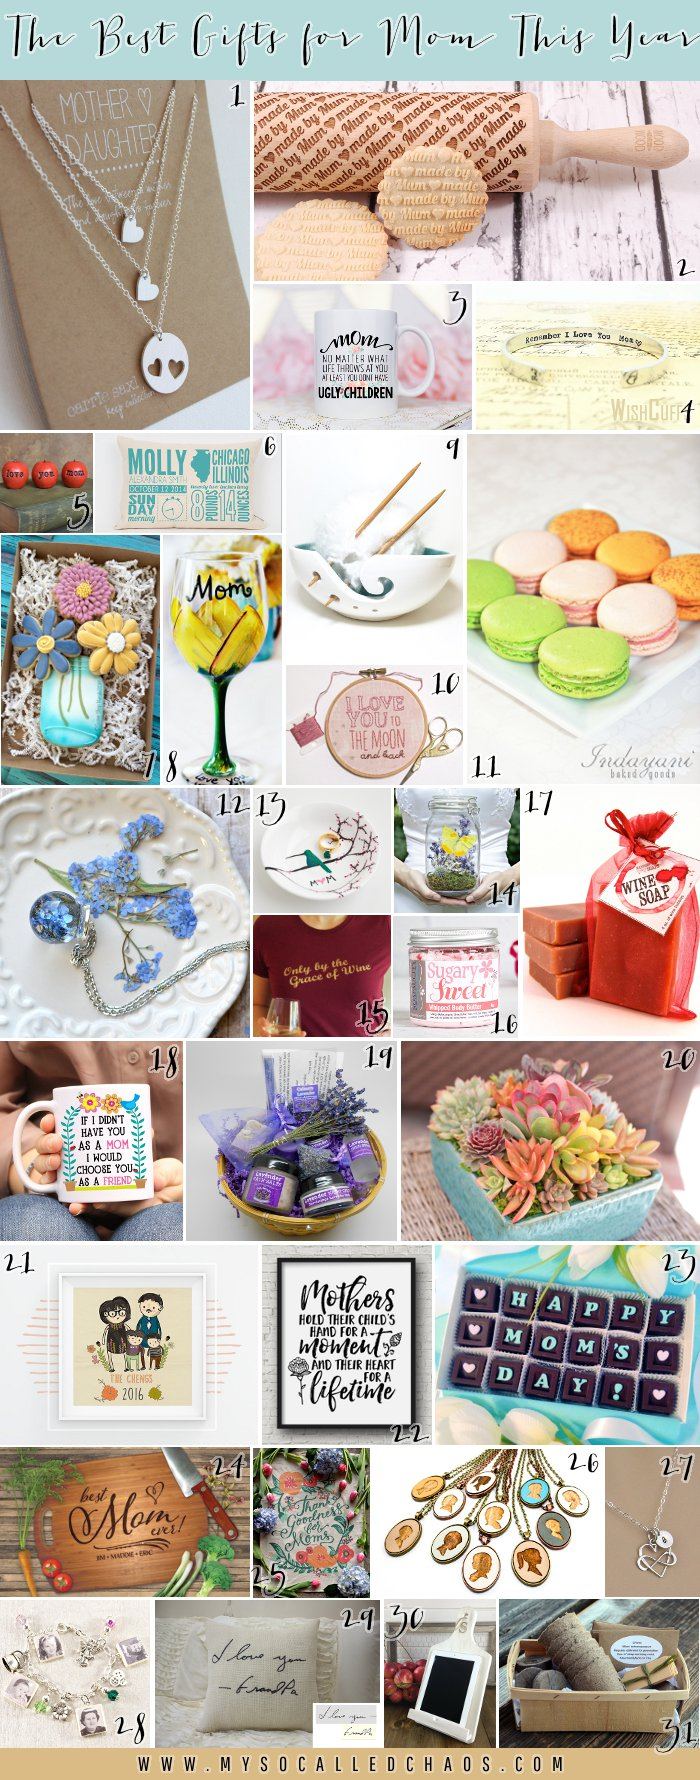 Mother's Day Gift Guide | The Best Gifts for Mom This Year